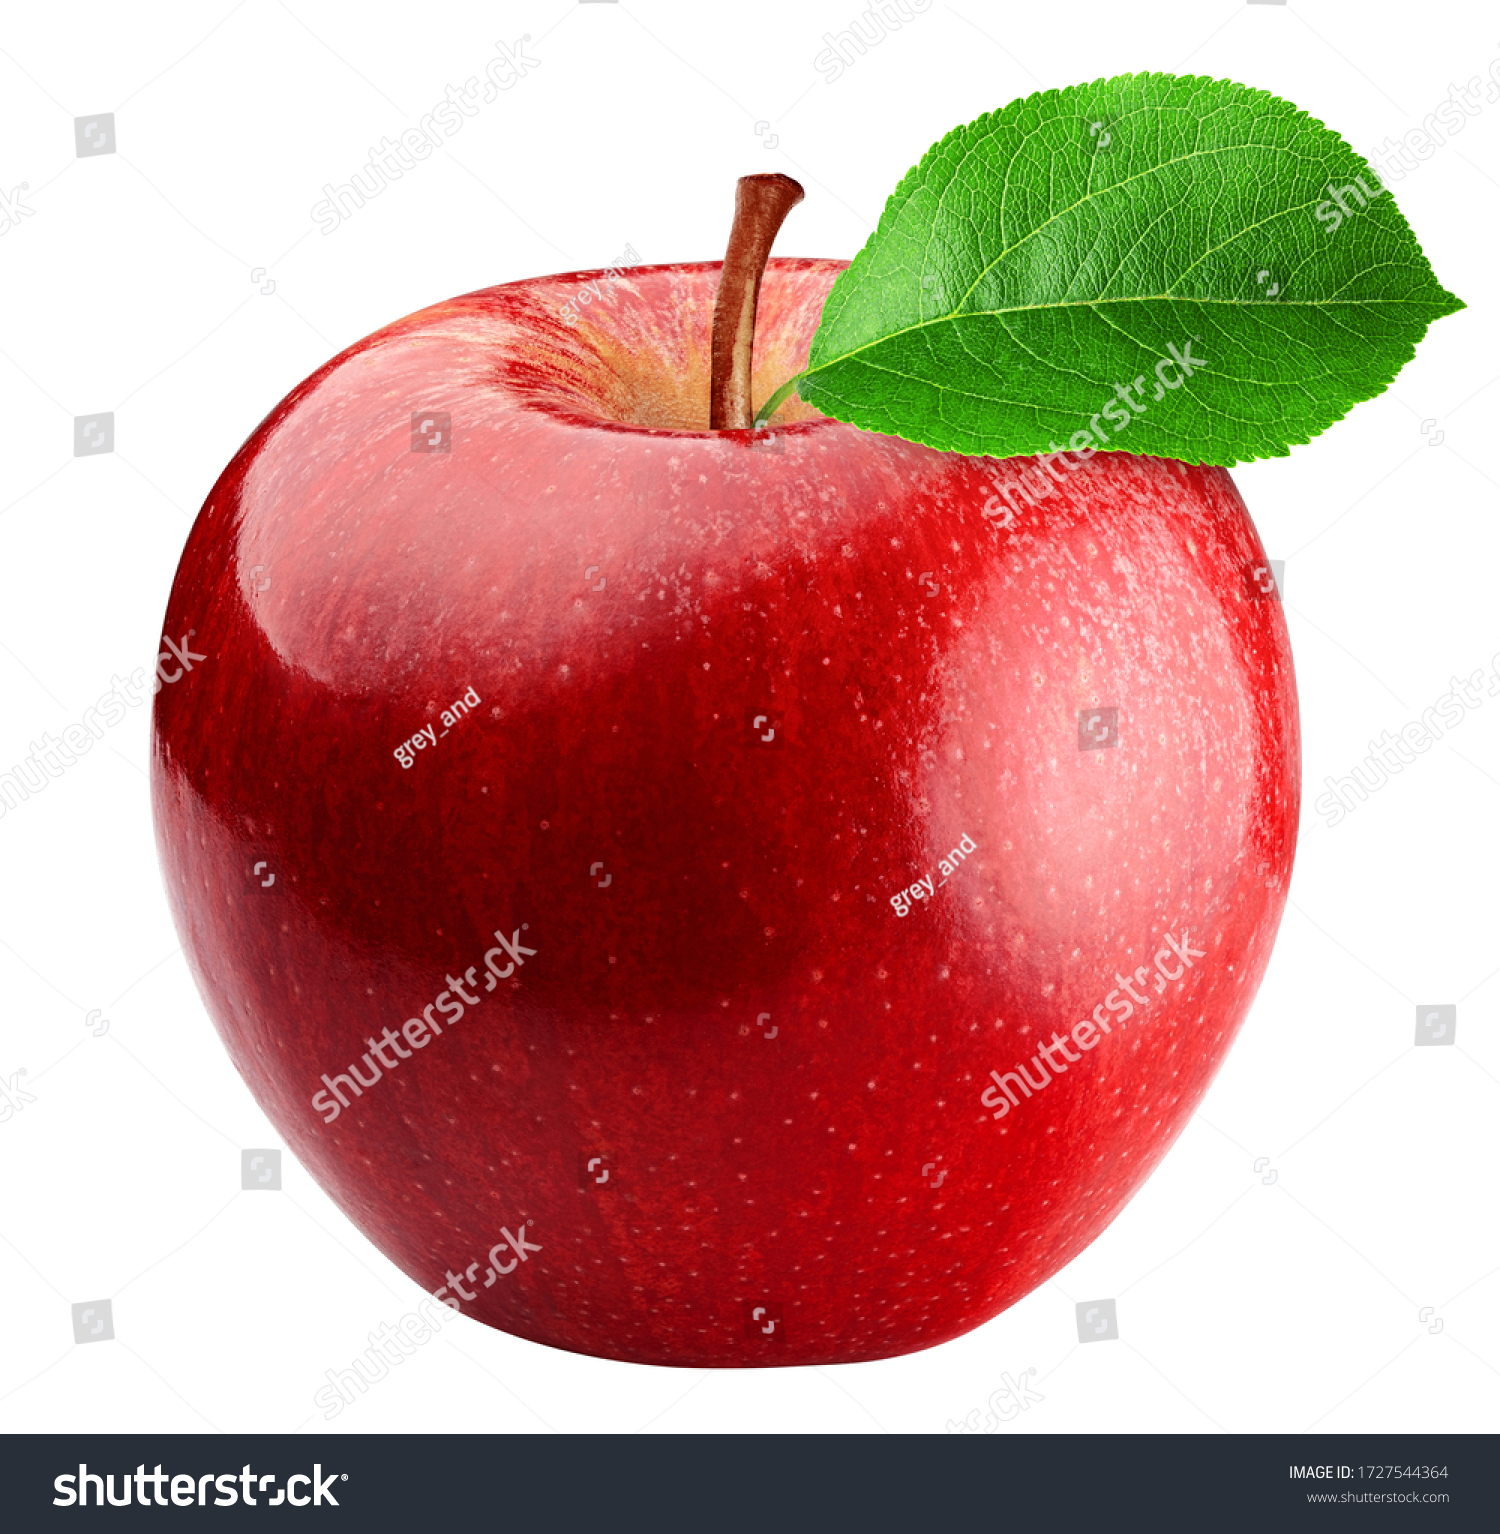 Red apple isolated on white background, clipping path, full depth of field #1727544364